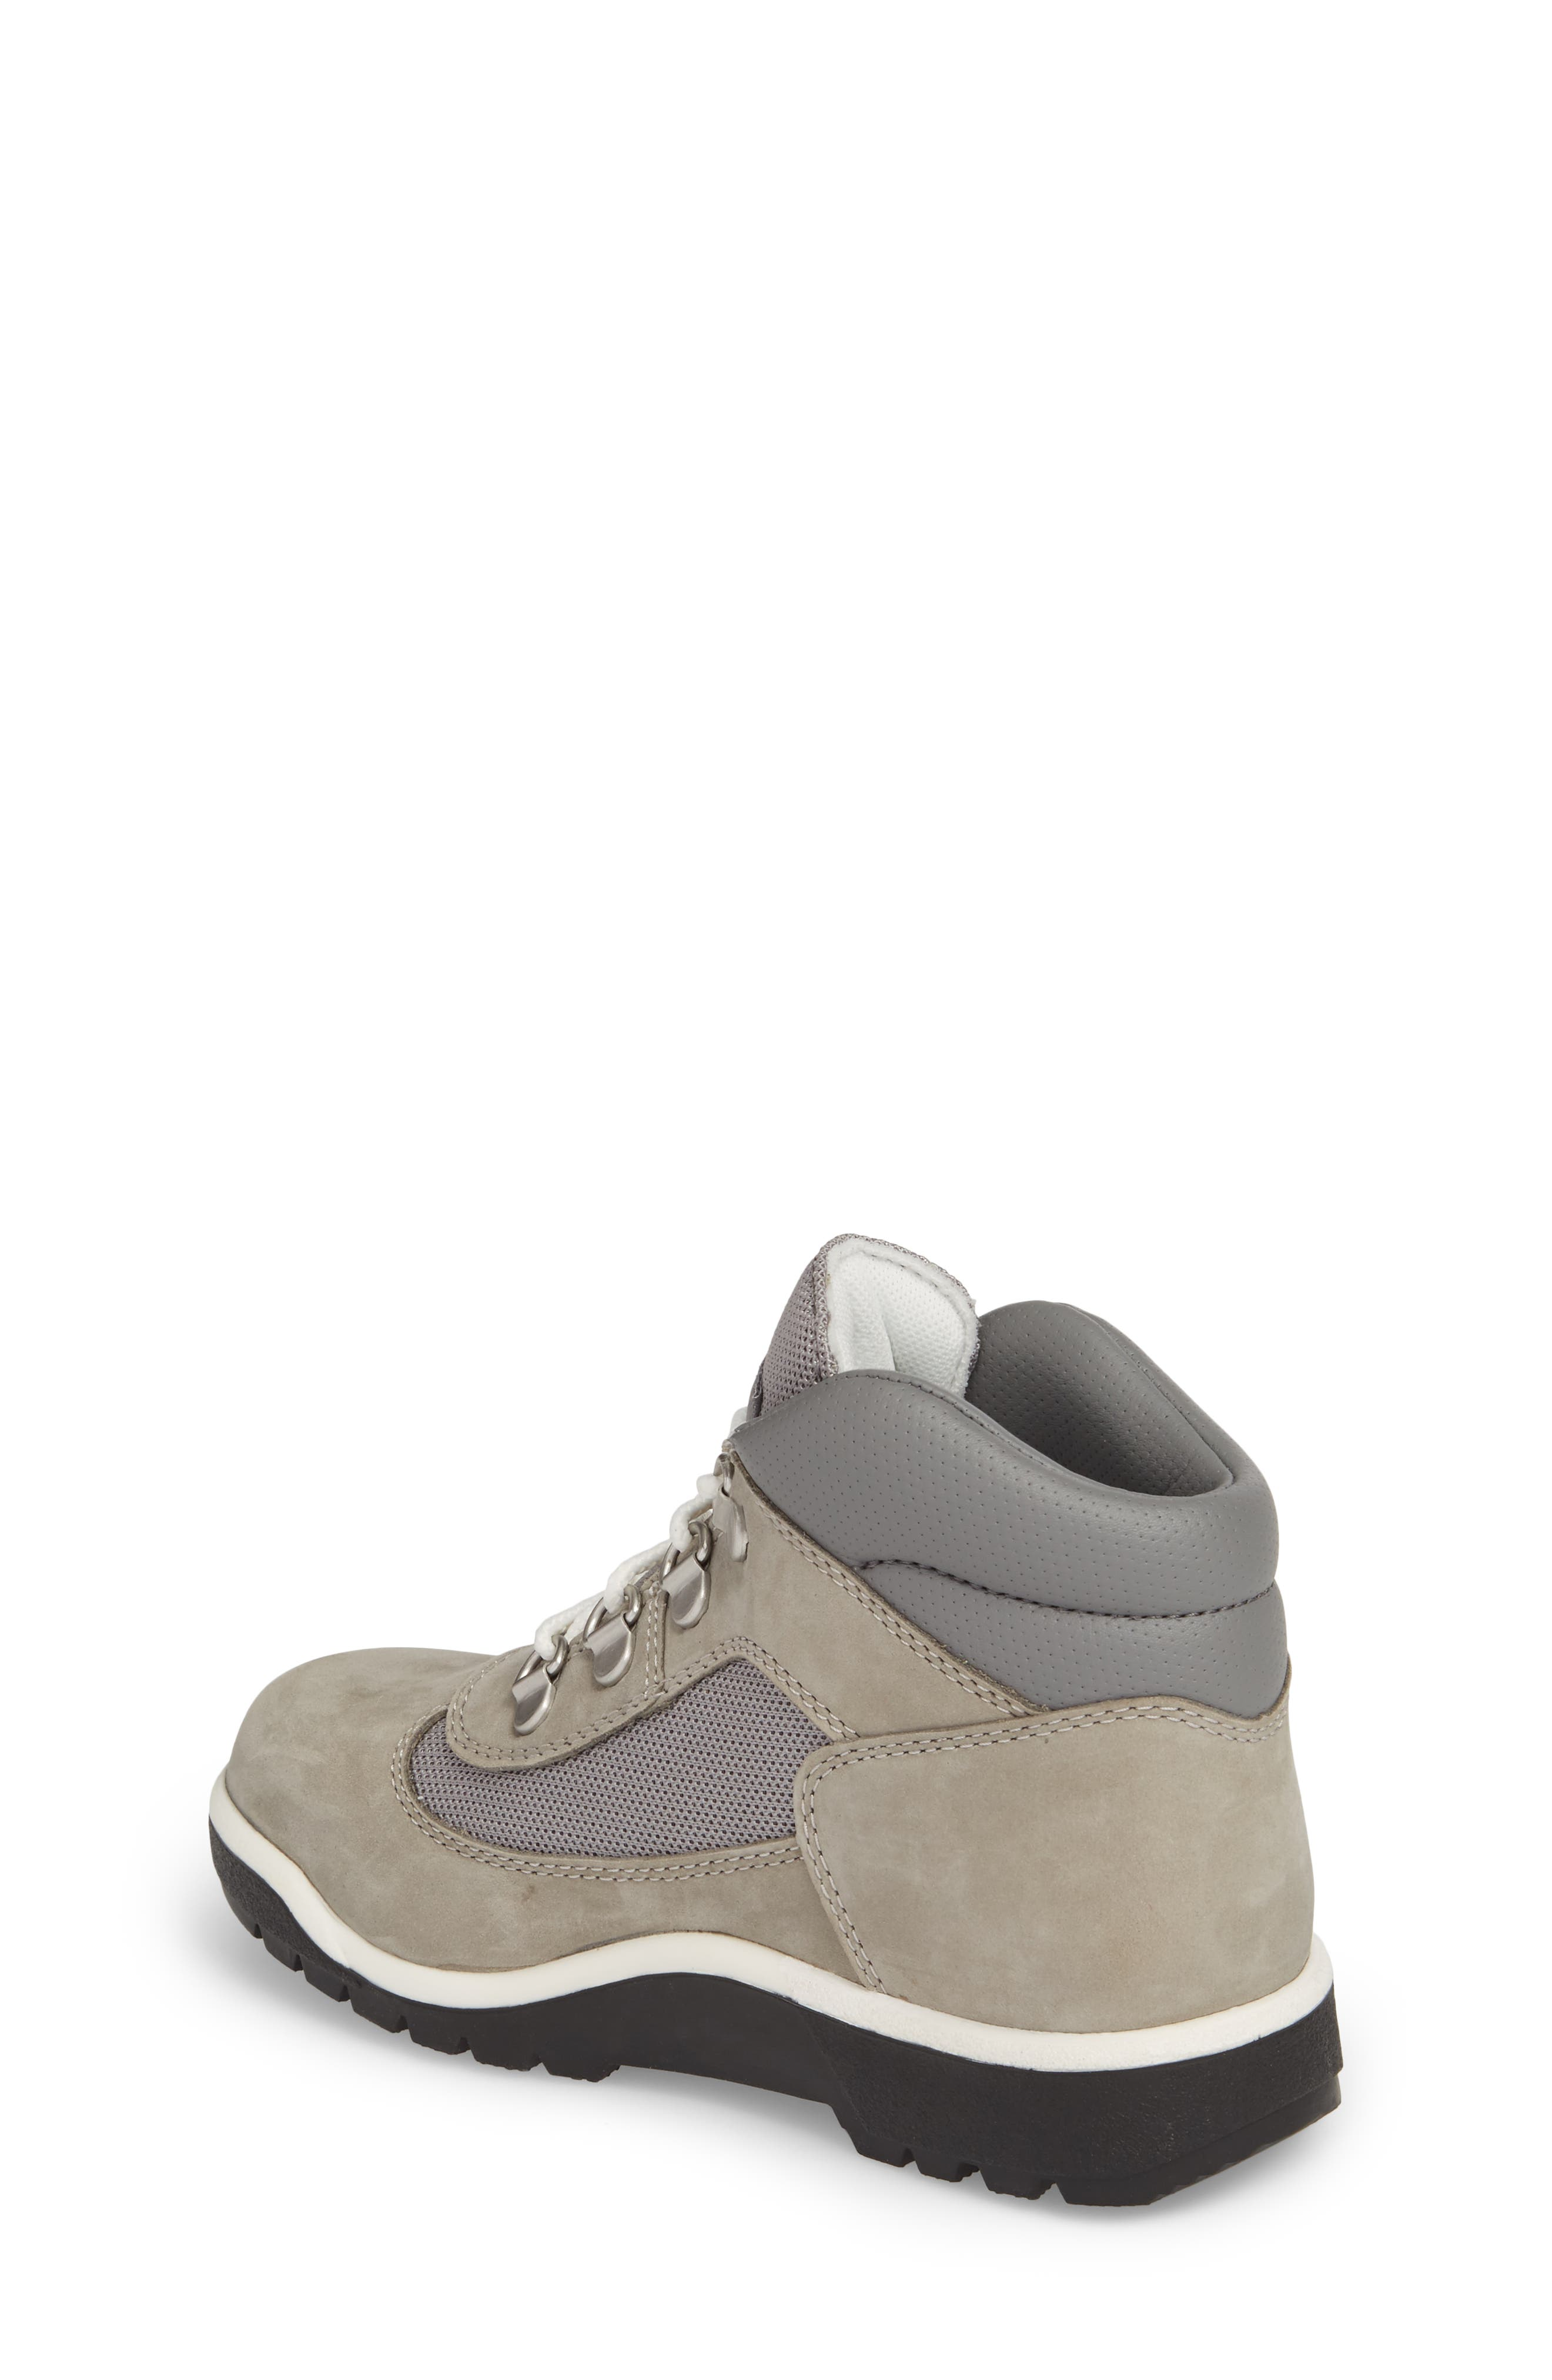 Water-Resistant Chukka Field Boot,                             Alternate thumbnail 2, color,                             030